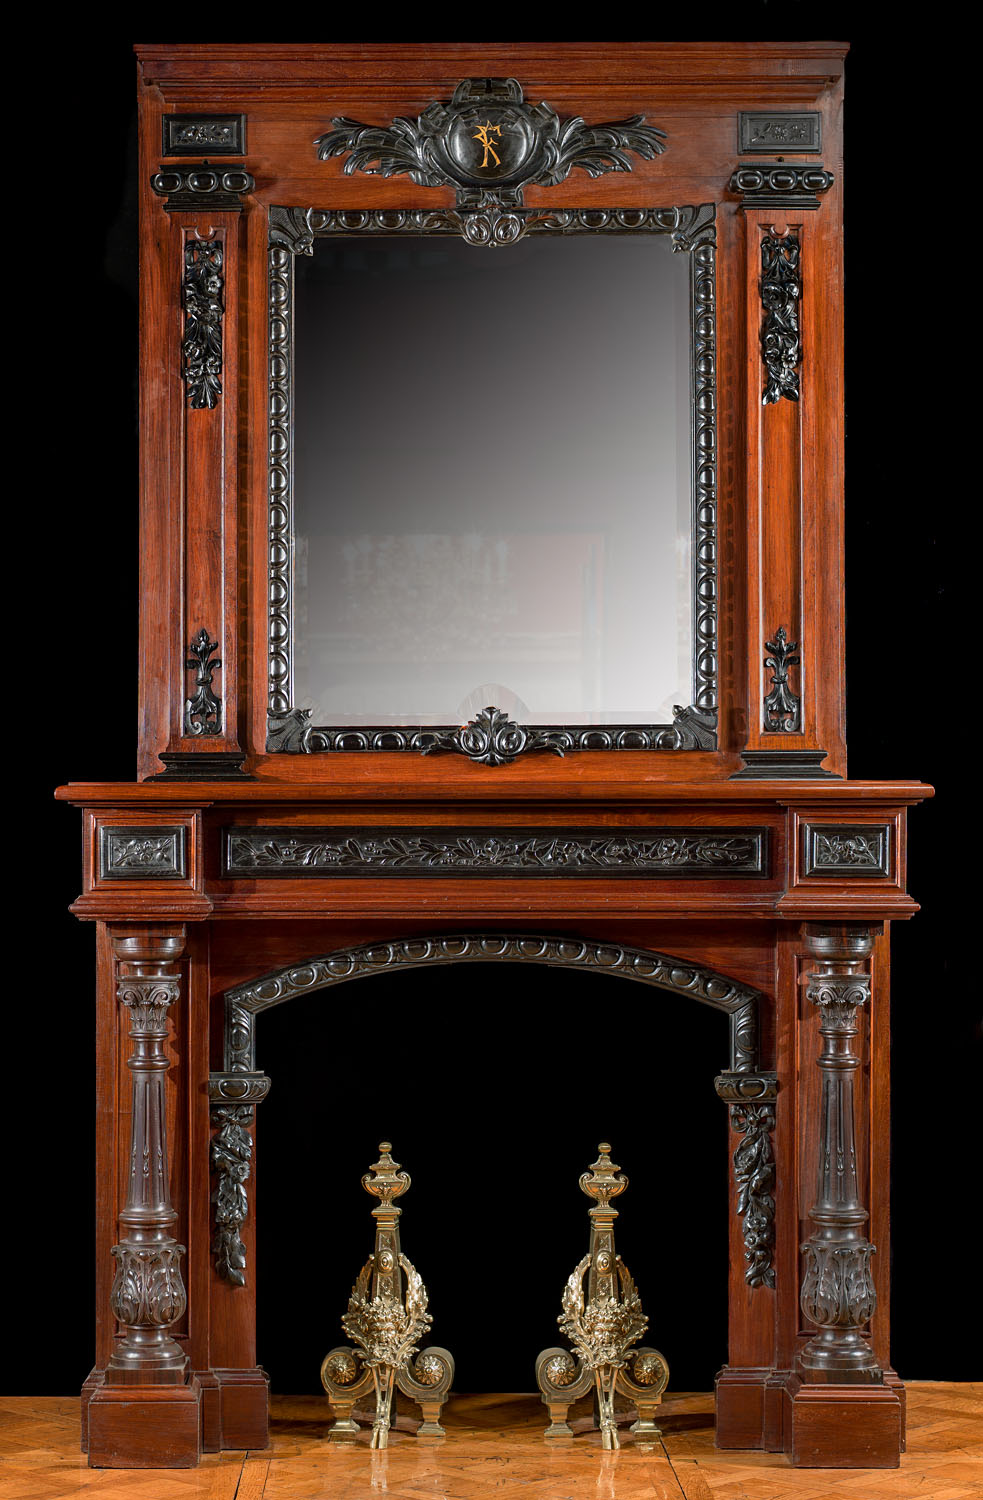 A grand French Victorian rosewood and ebony antique chimneypiece